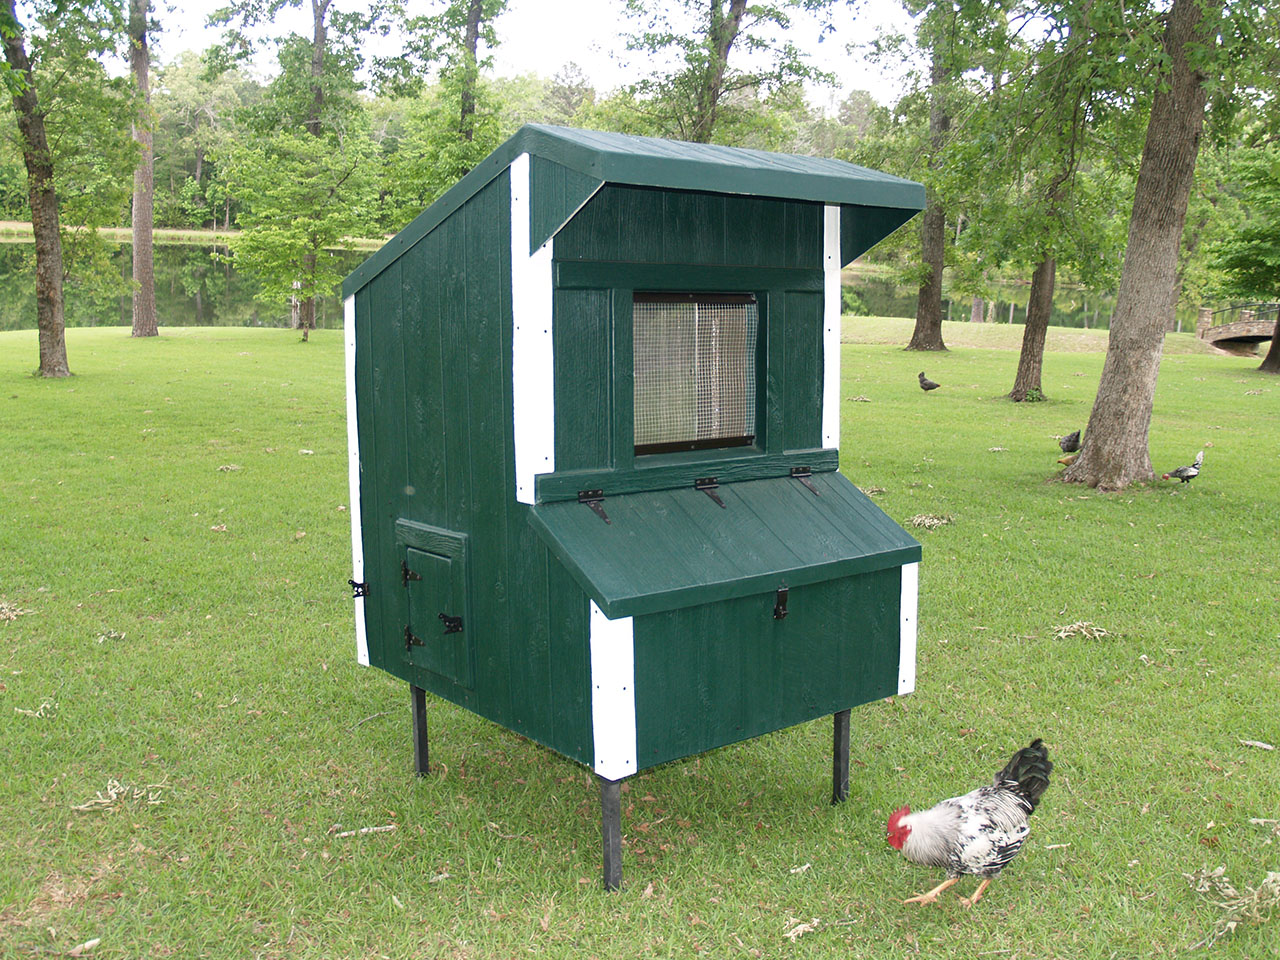 Eggstreme Chicken Coops 5 39 X 4 39 Traditional Fiberglass